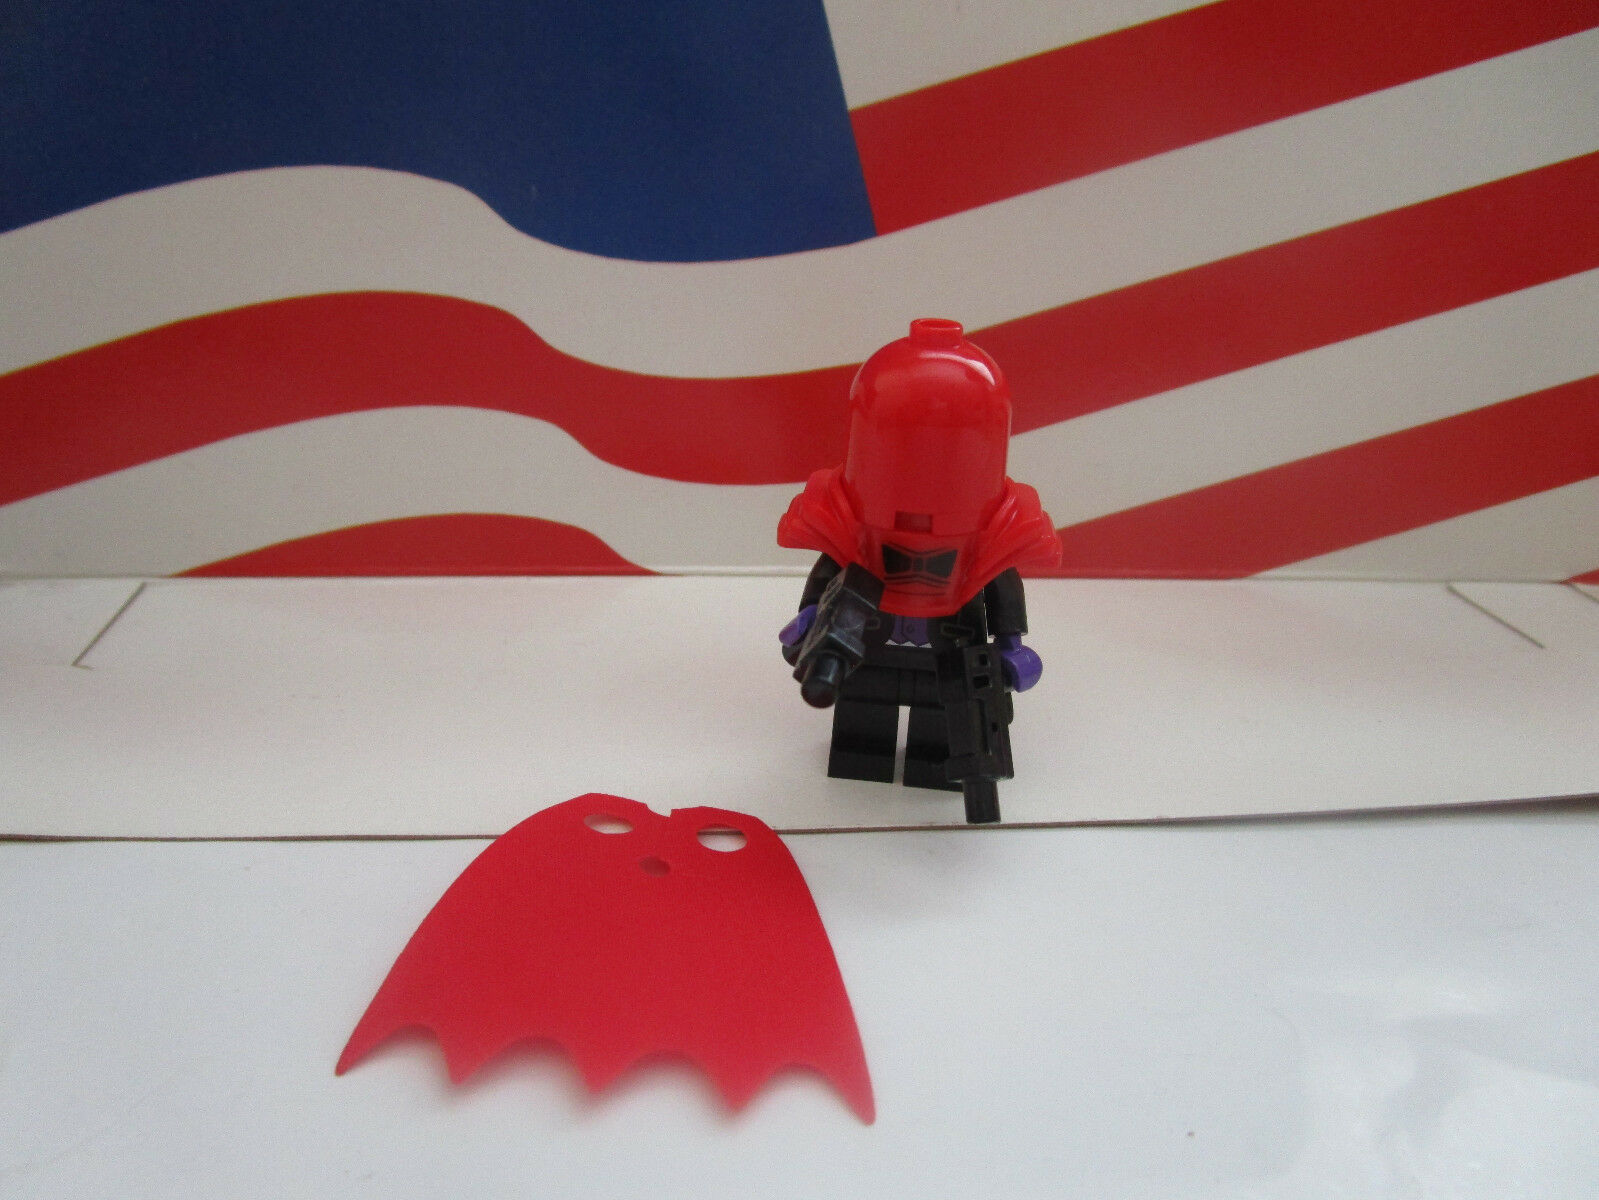 Lego Batman Movie Series Minifigure Red Hood With Cape 2 Guns 71017 Minifigures Box Of 60 1 2only Available